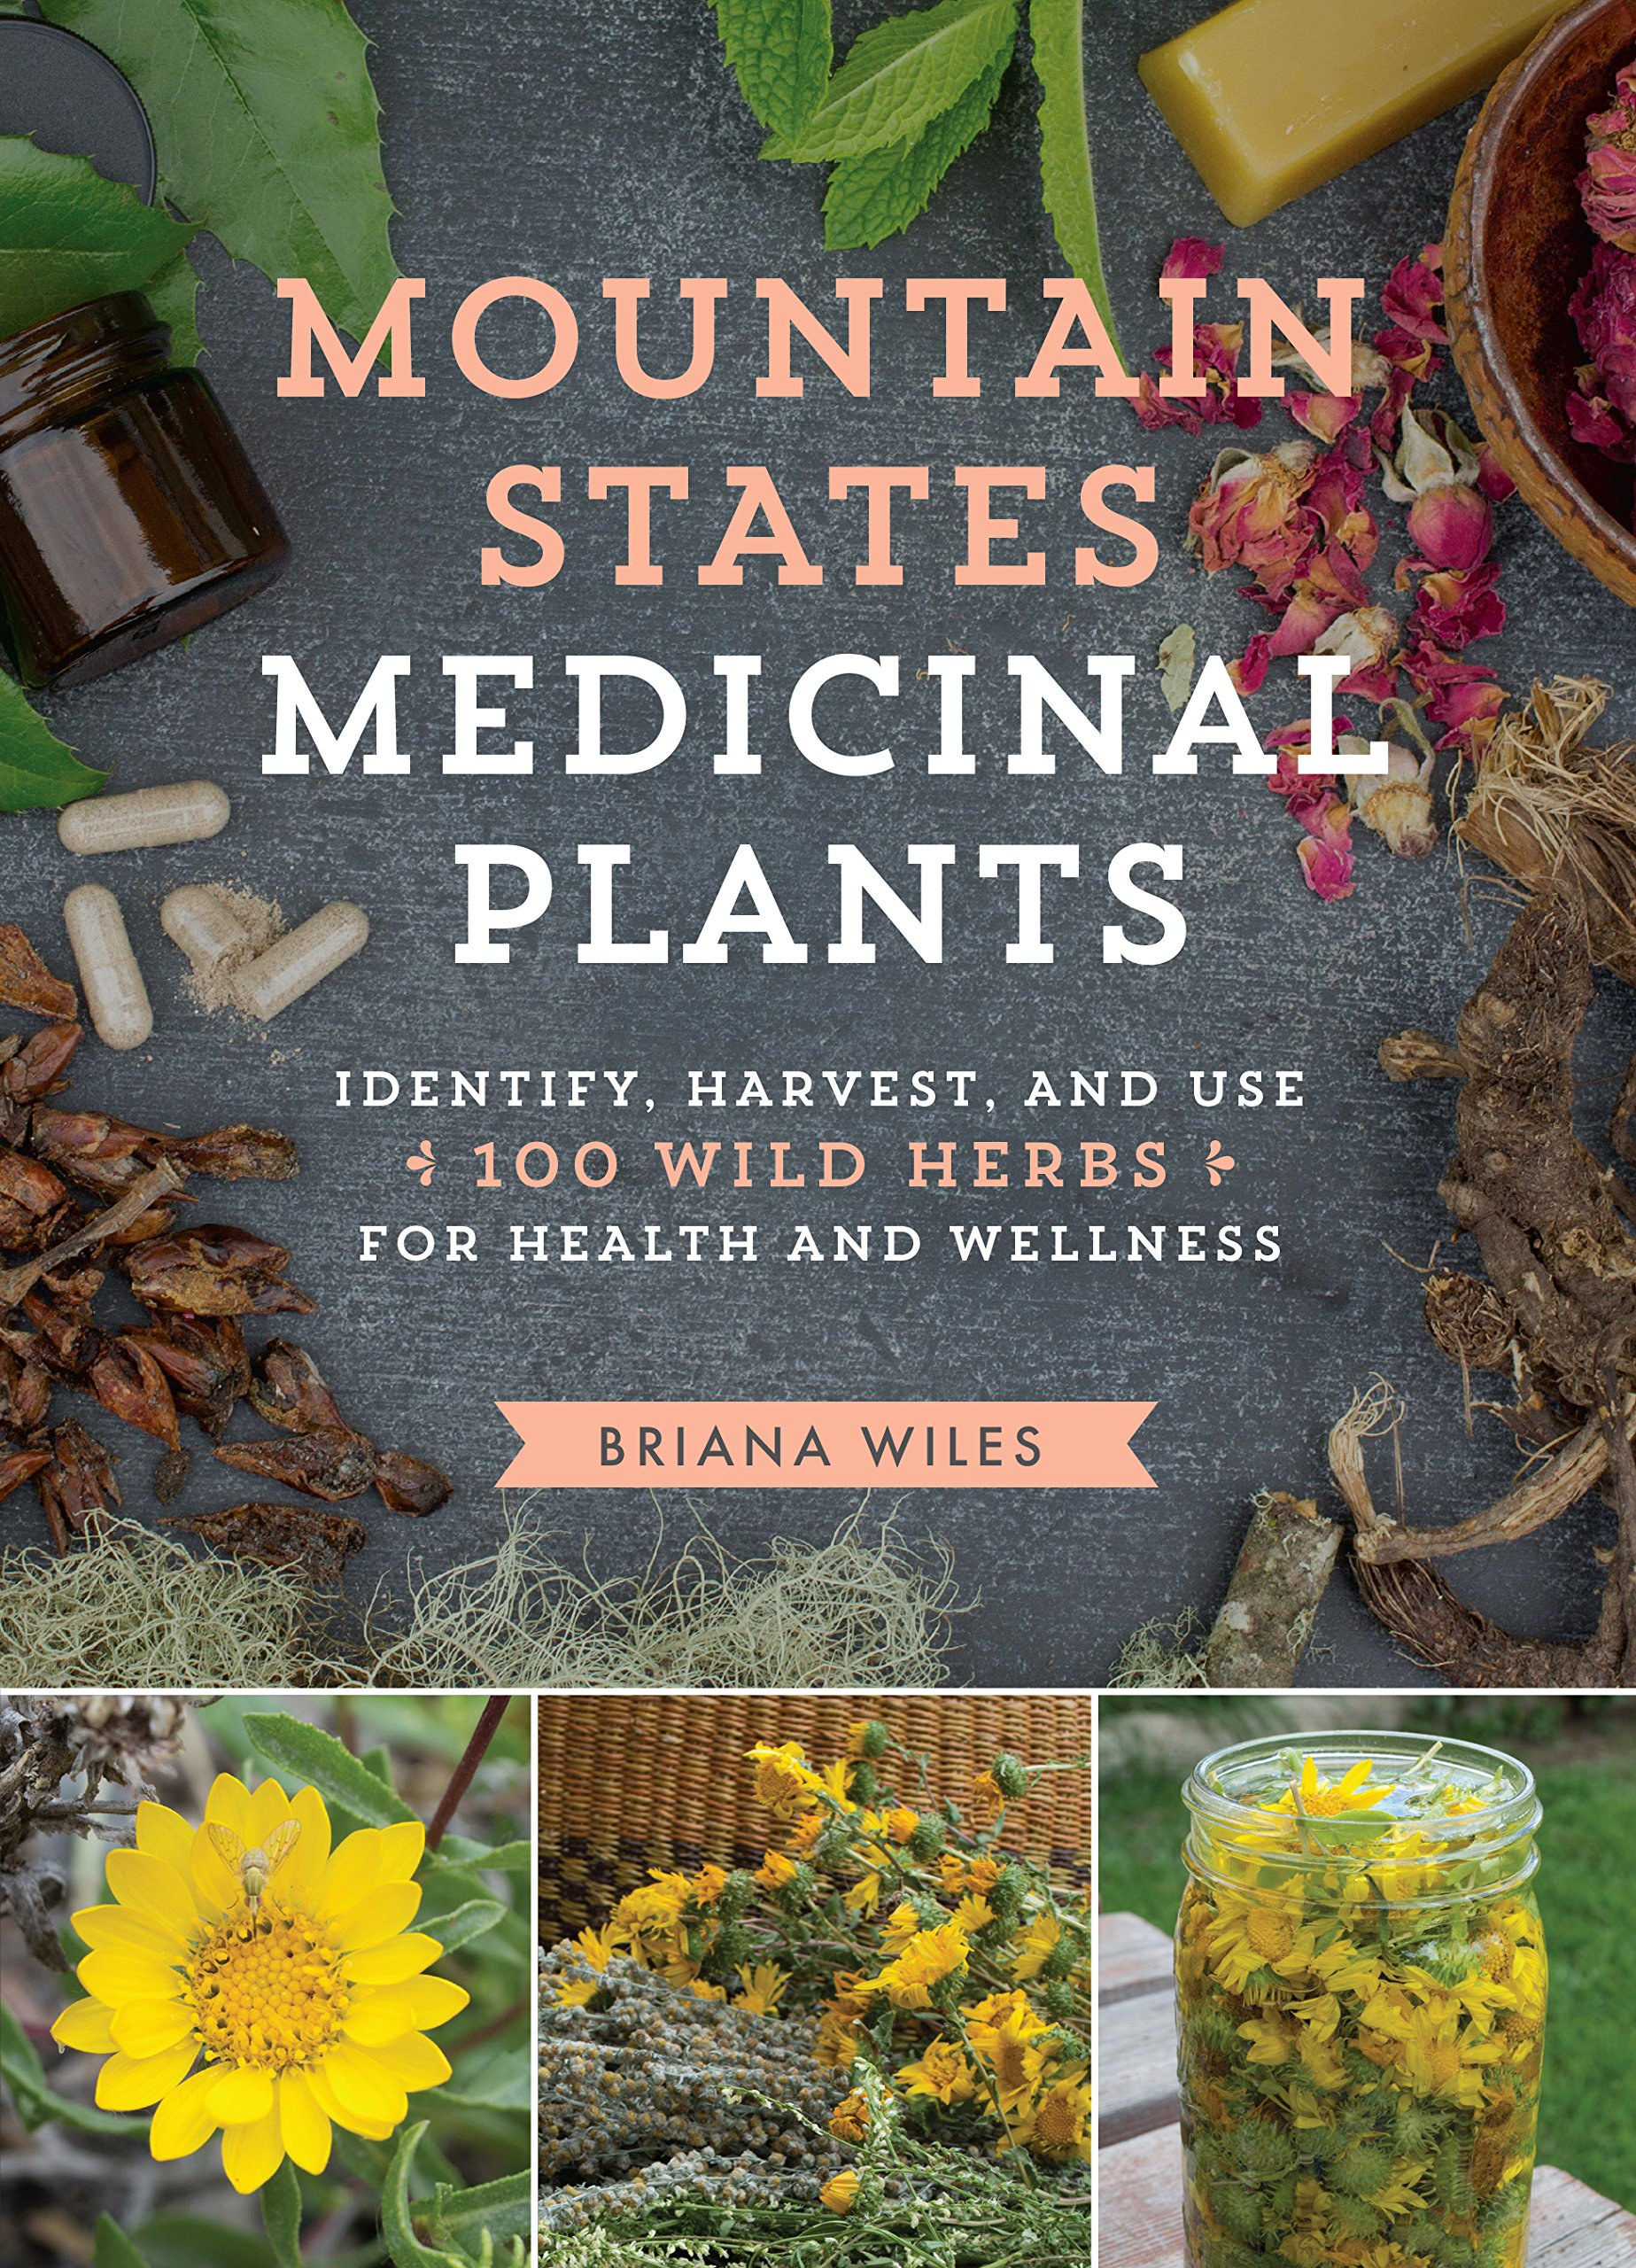 Download Mountain States Medicinal Plants: Identify, Harvest, and Use 100 Wild Herbs for Health and Wellness PDF